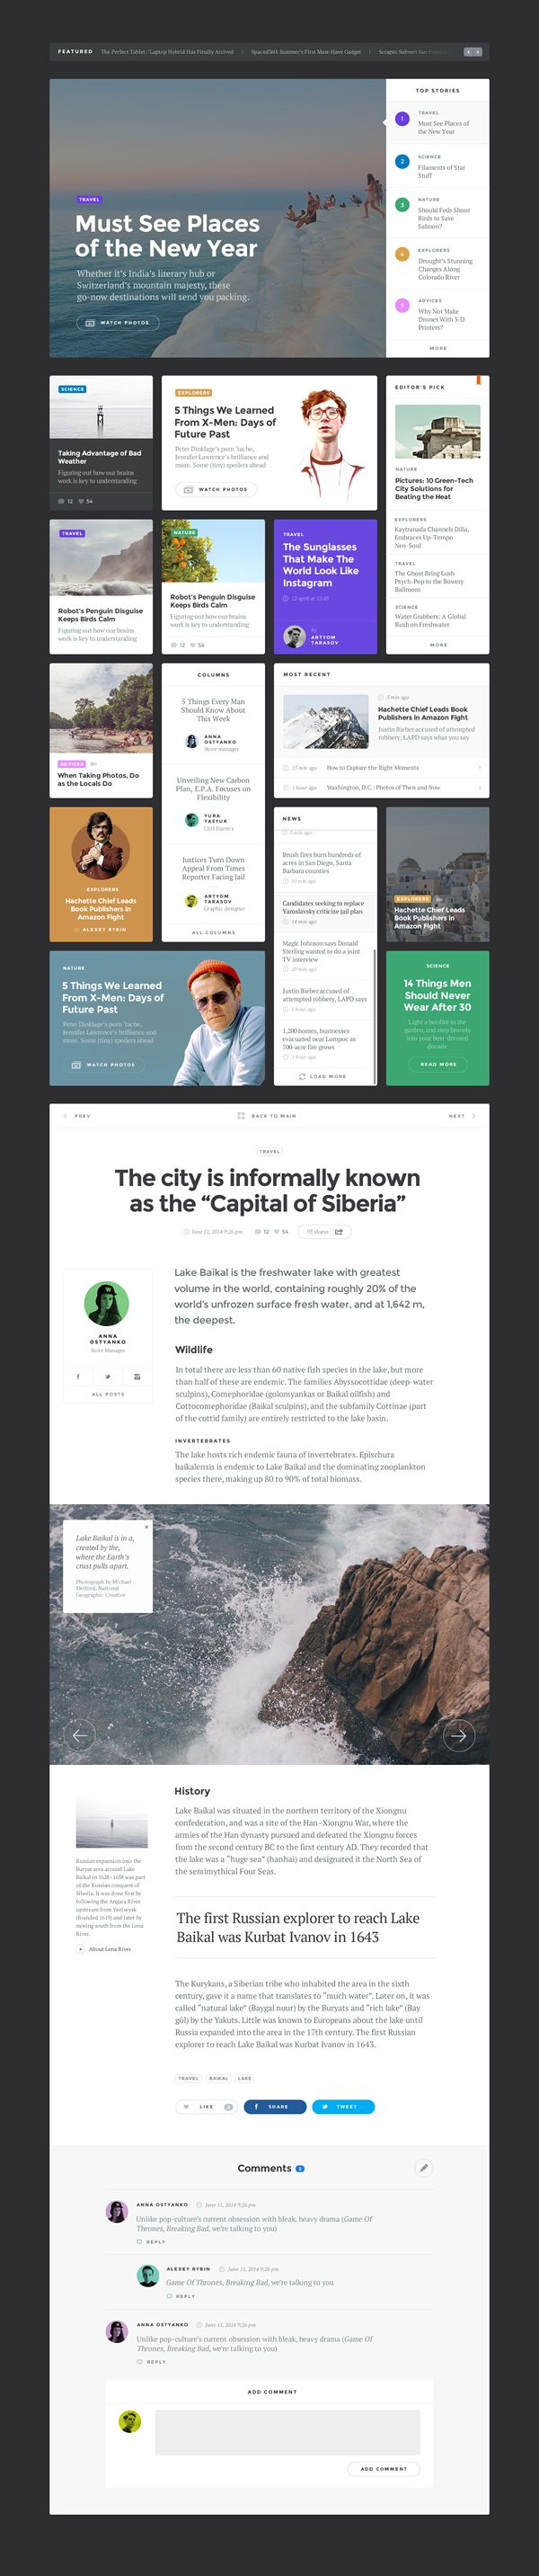 Baikal_blog_dark // Hi Friends, look what I just found on #web #design! Make sure to follow us @moirestudiosjkt to see more pins like this | Moire Studios is a thriving website and graphic design studio based in Jakarta, Indonesia.